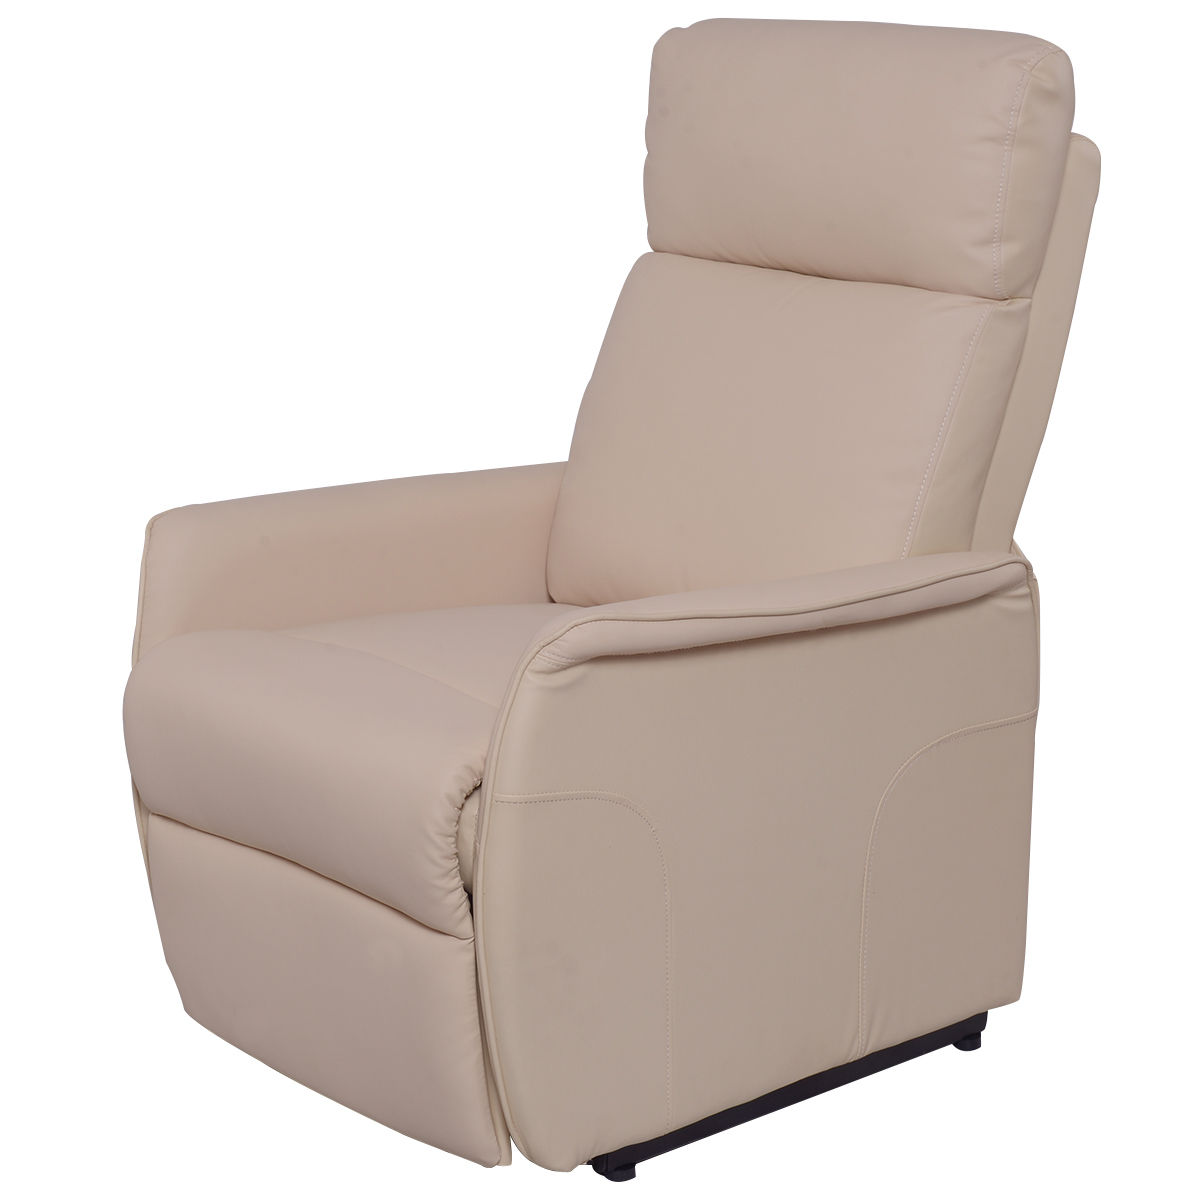 costway pu electric lift chair power recliner reclining sofa lounge wremote controller - Electric Recliner Chairs